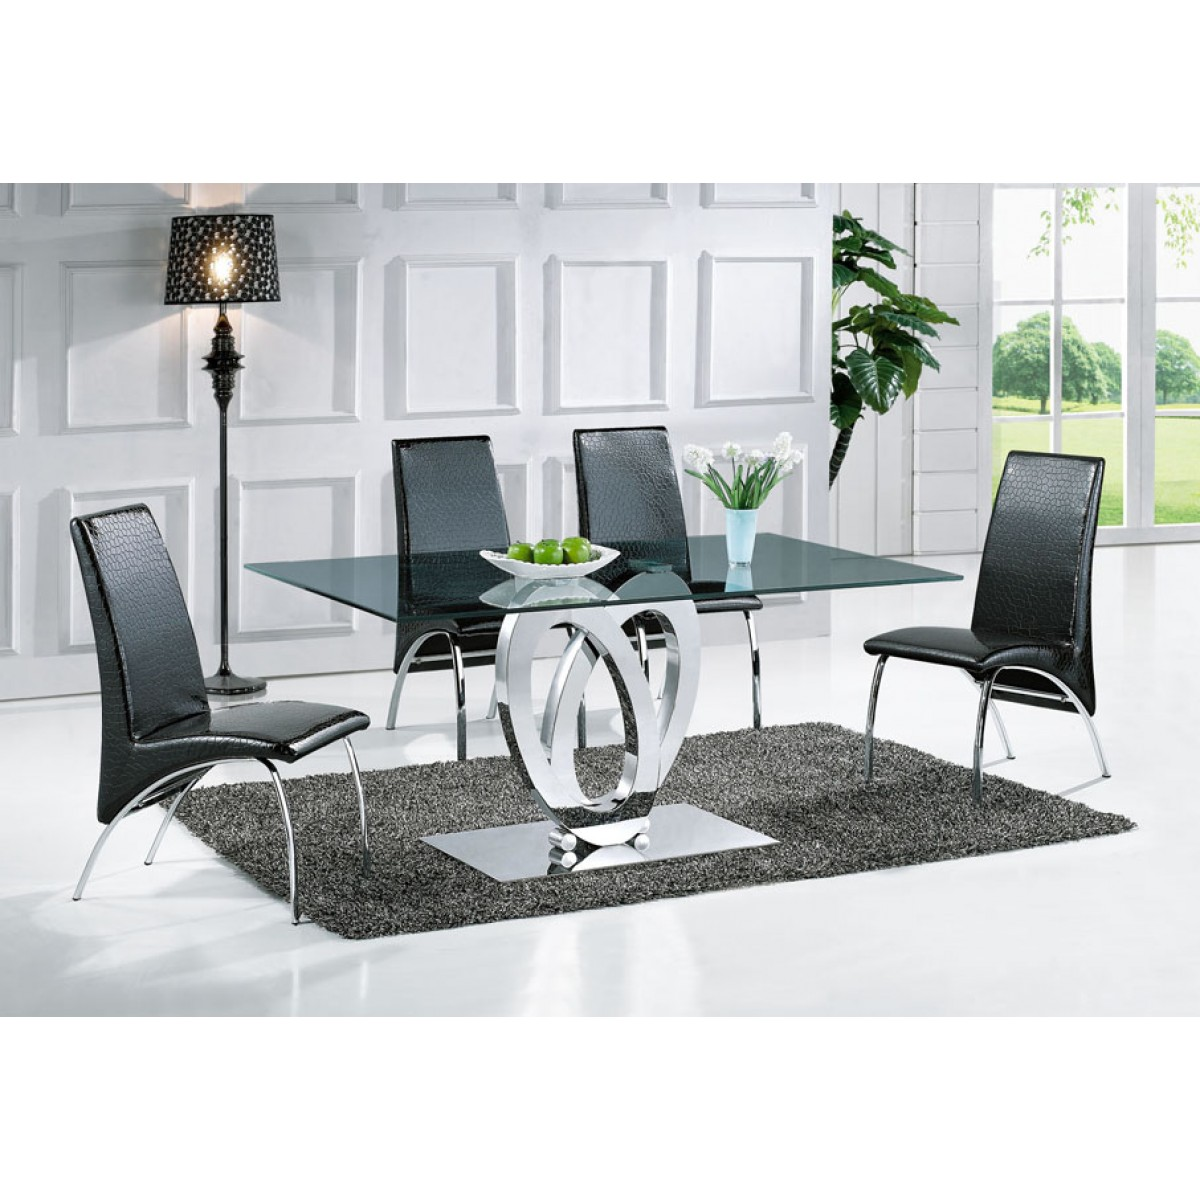 Emejing table en verre salle a manger ideas amazing - Table salle a manger modulable ...